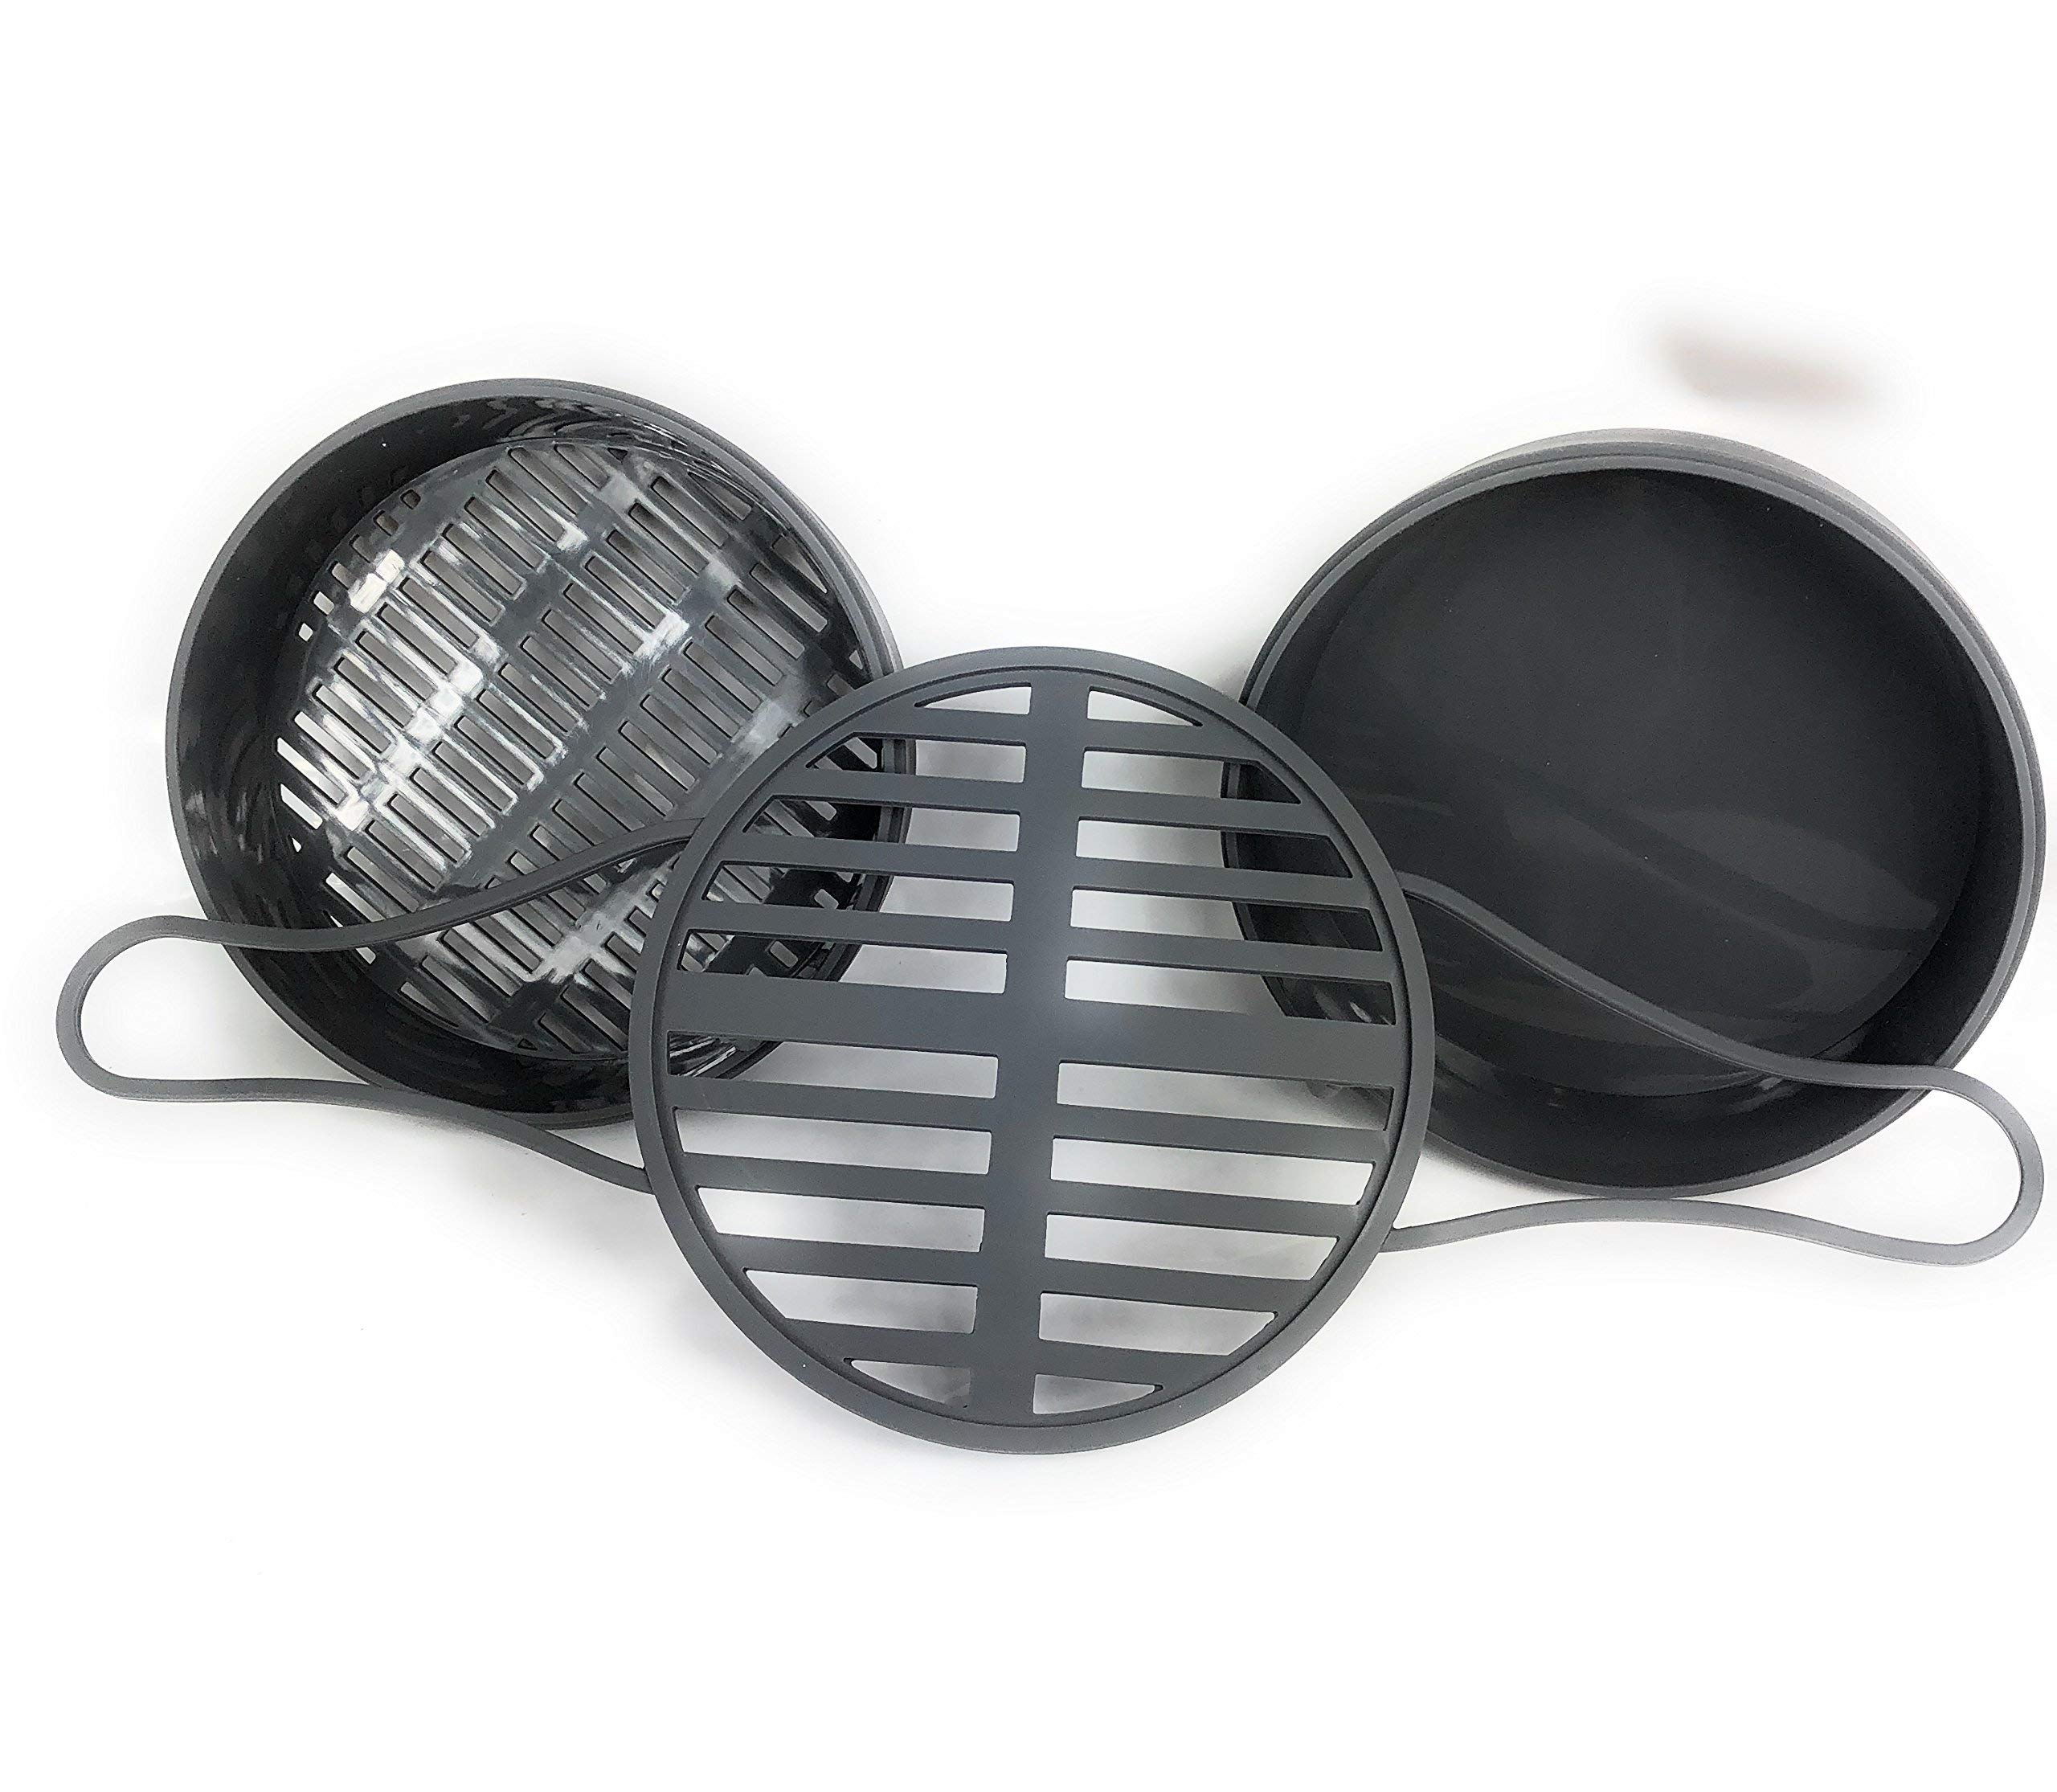 Silicone Steamer Basket Bundle Gift Set For Pressure Cookers and Instant Pot, 3 pieces